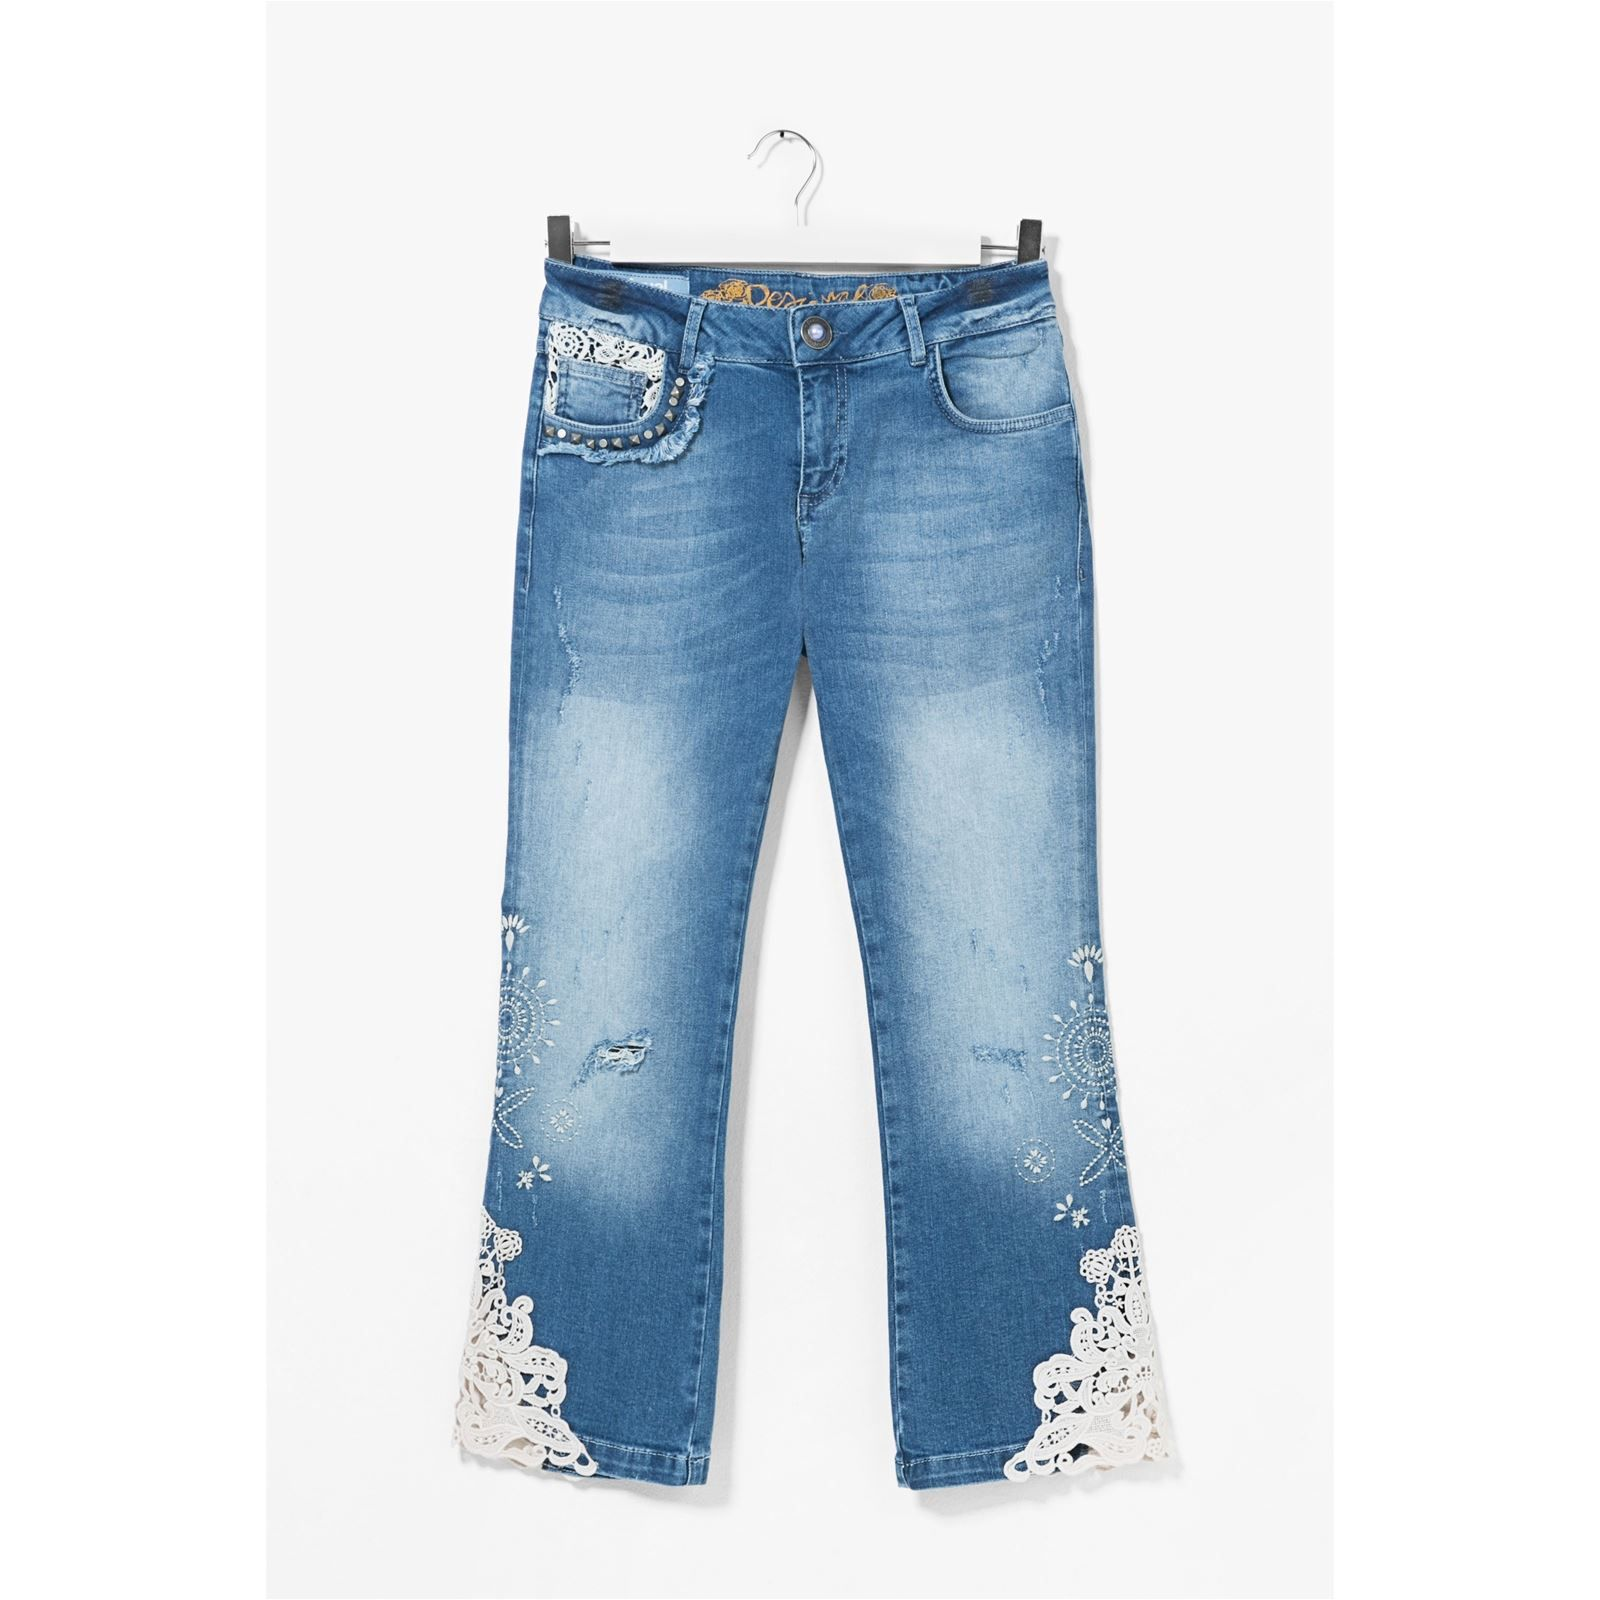 Desigual Light wash 3 - Jean droit - bleu